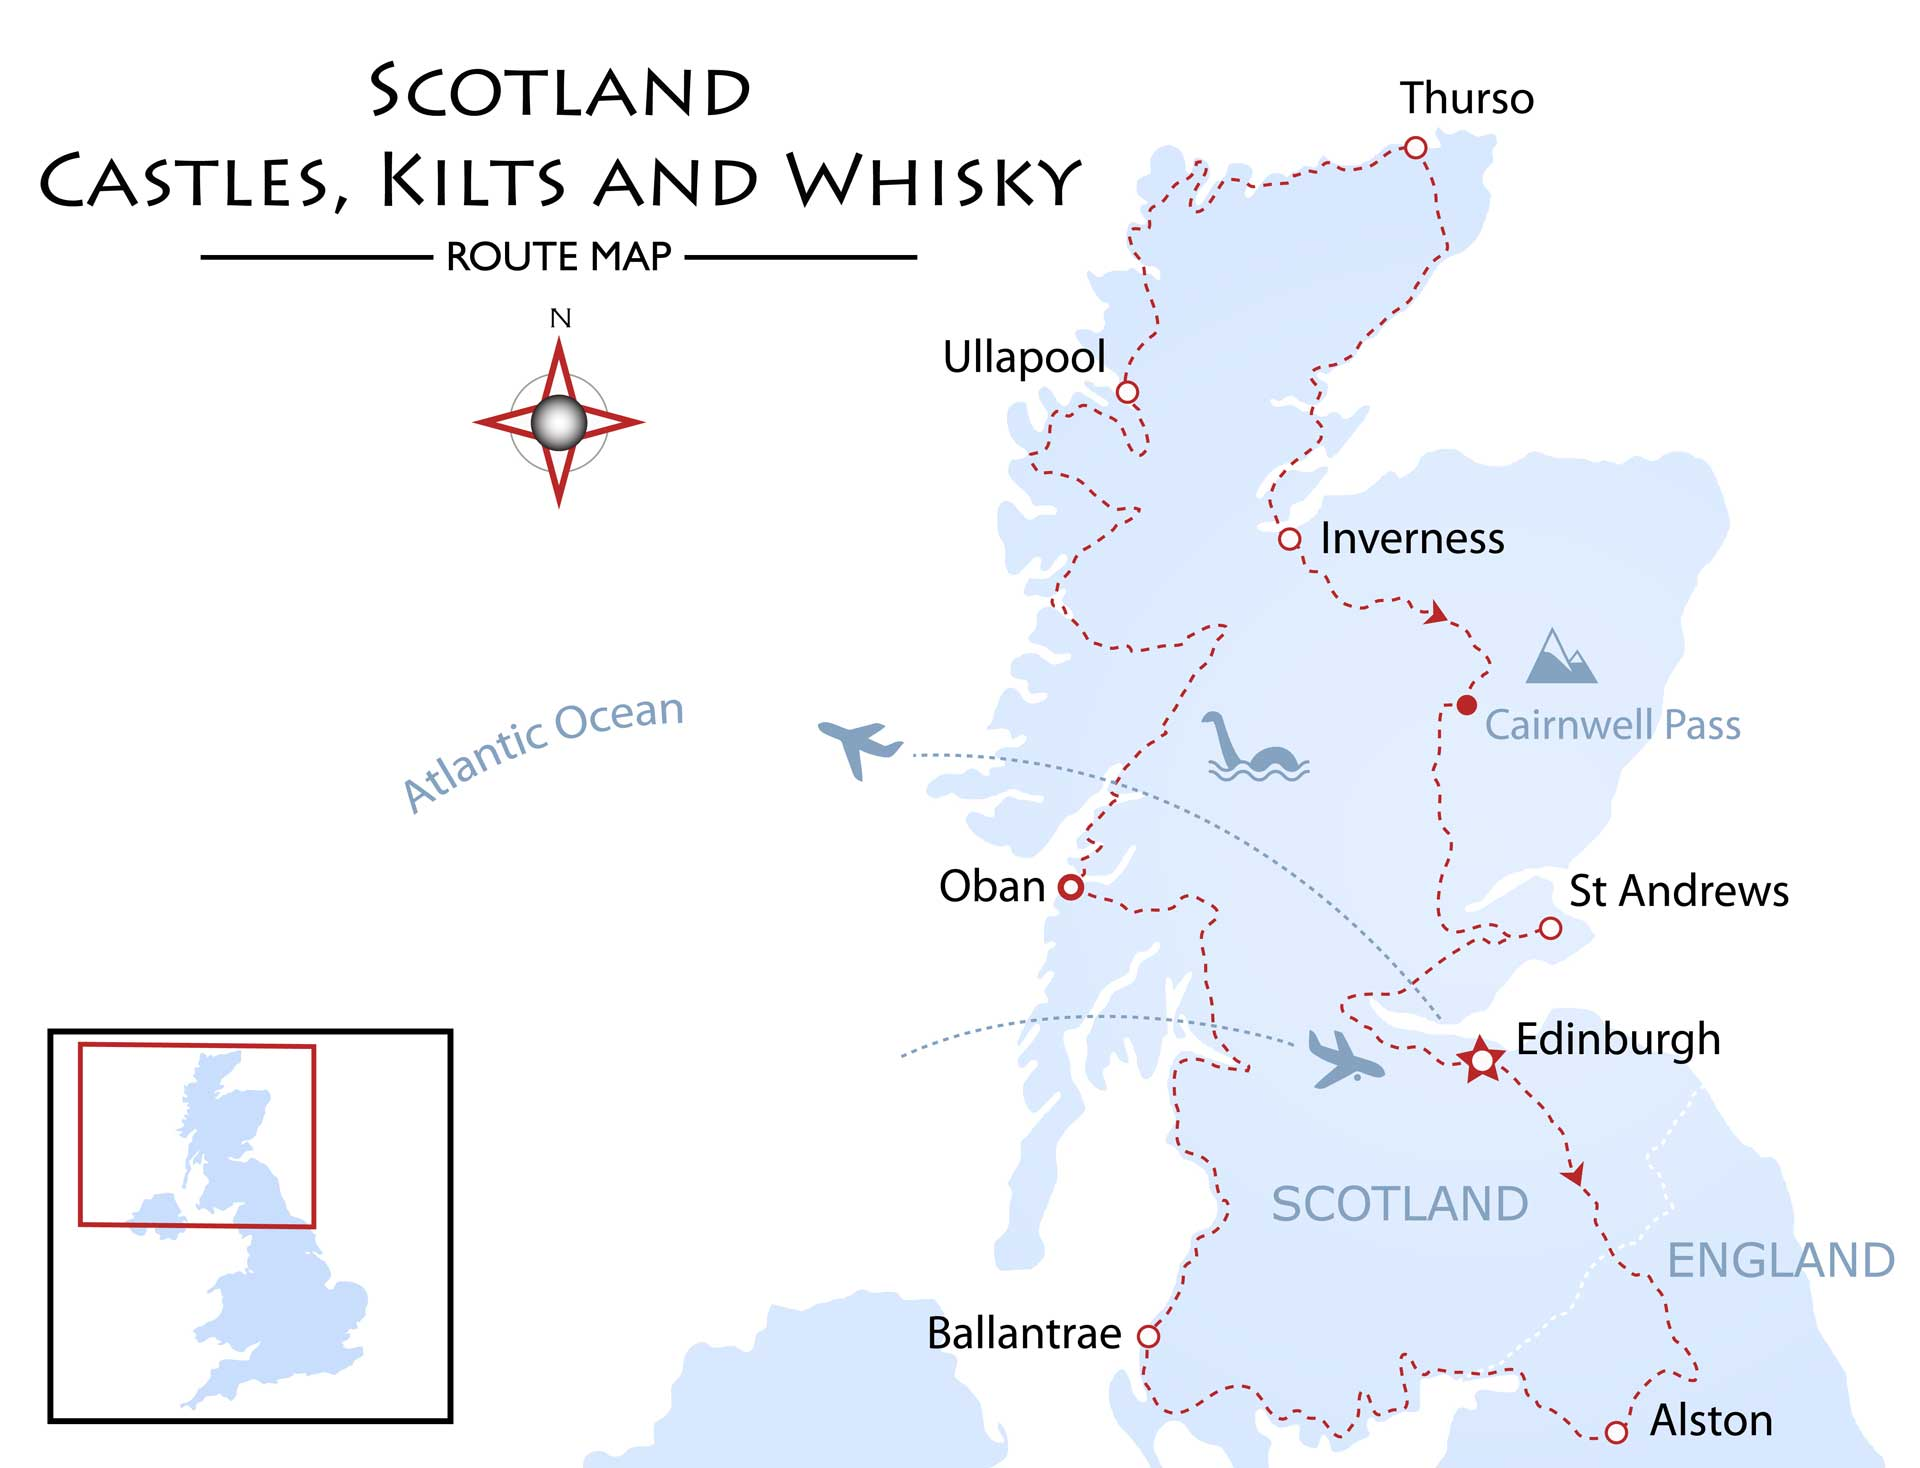 Scotland - Castles, Kilts and Whisky Tour Map